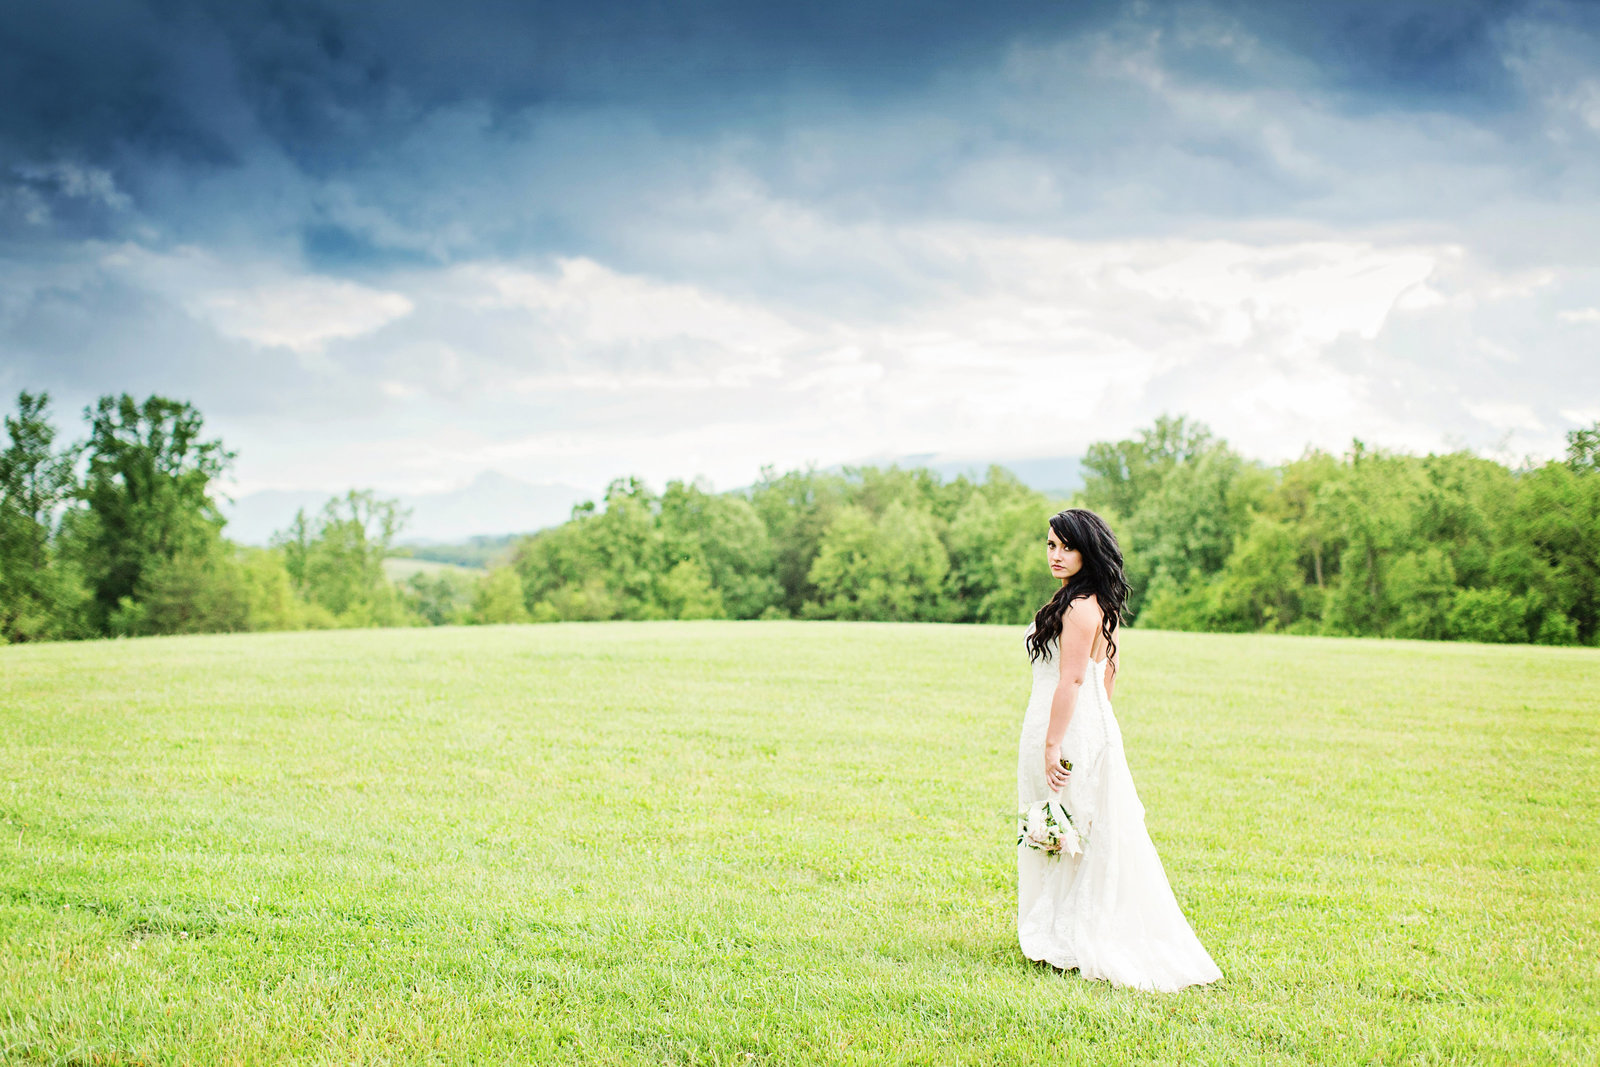 bridal portrait skyryder engagement wedding photography blacksburg roanoke charlottesville lexington radford-013